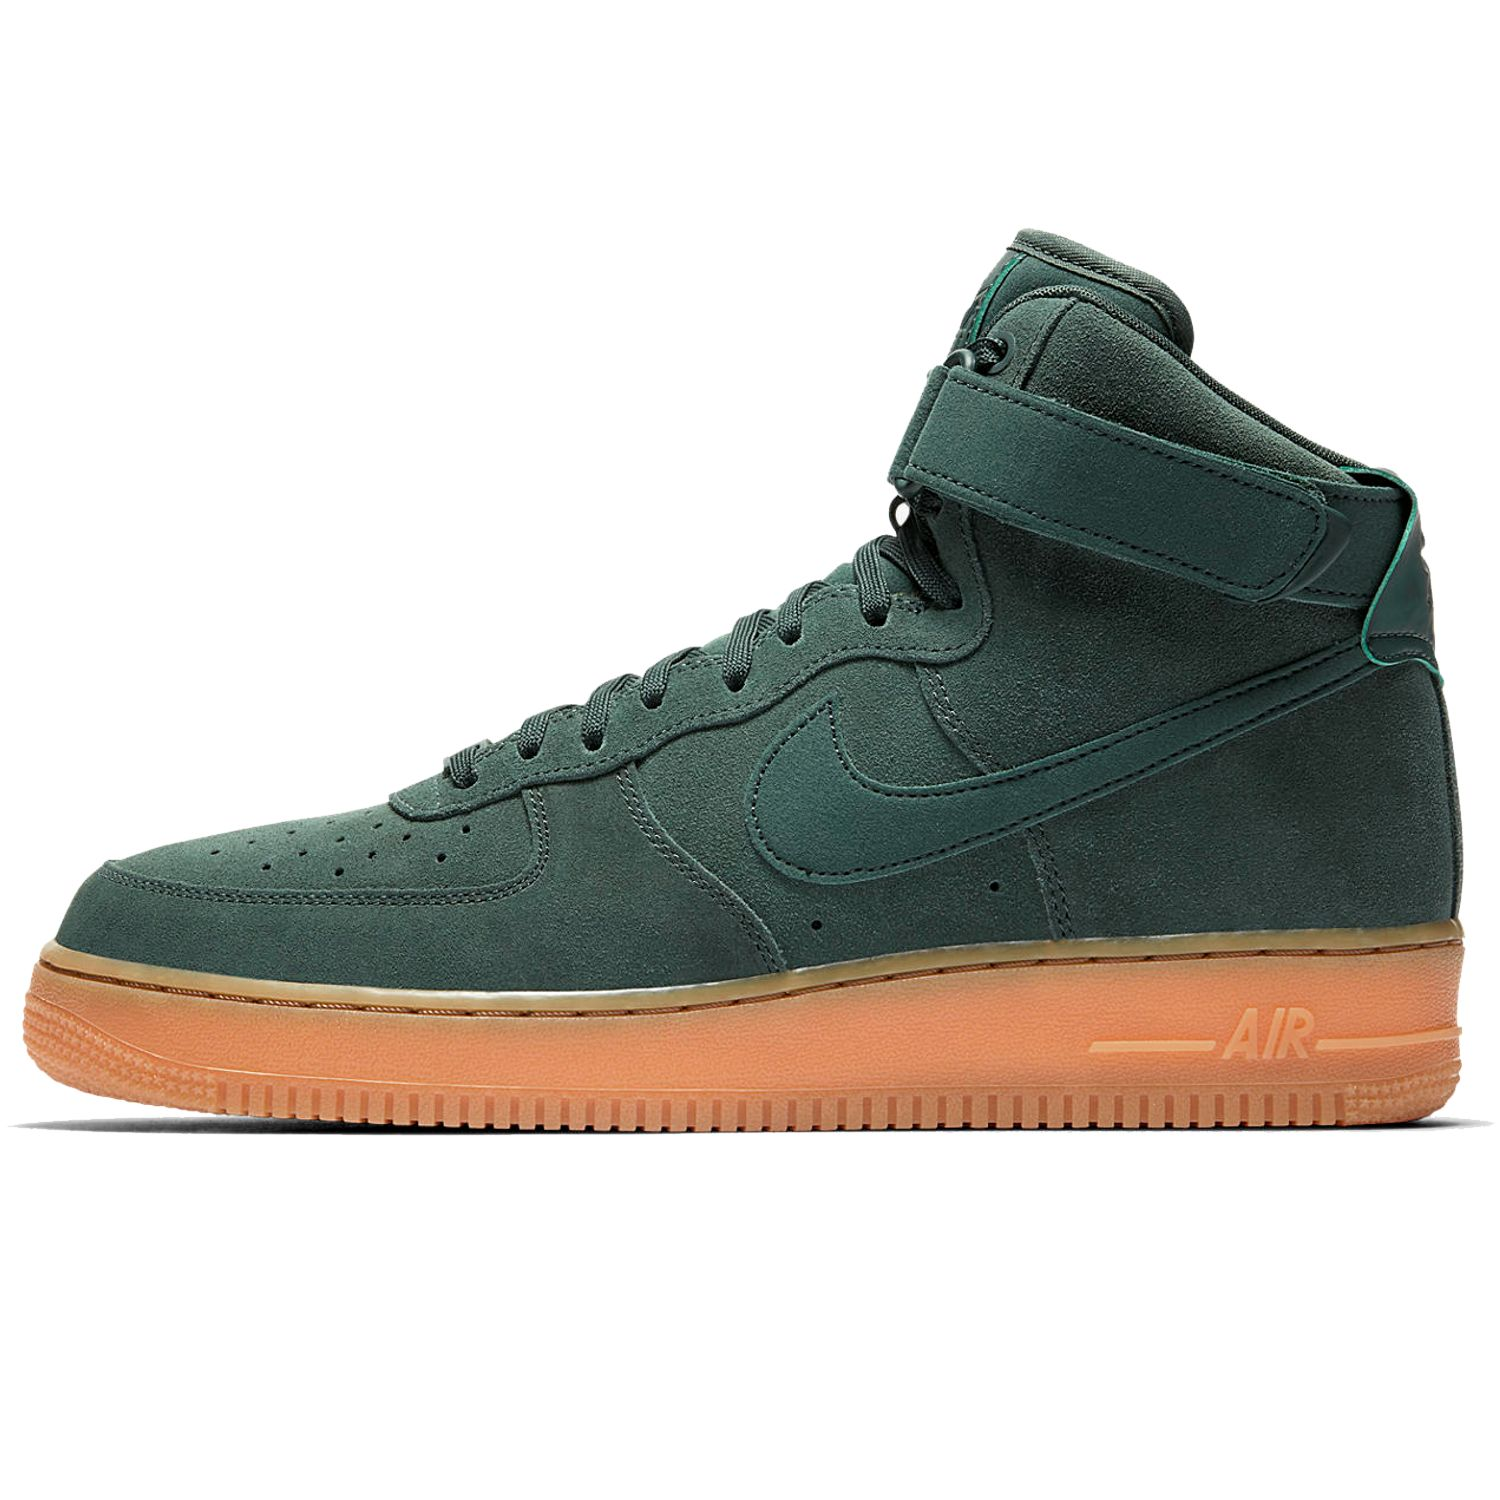 nike buty męskie air force 1 high '07